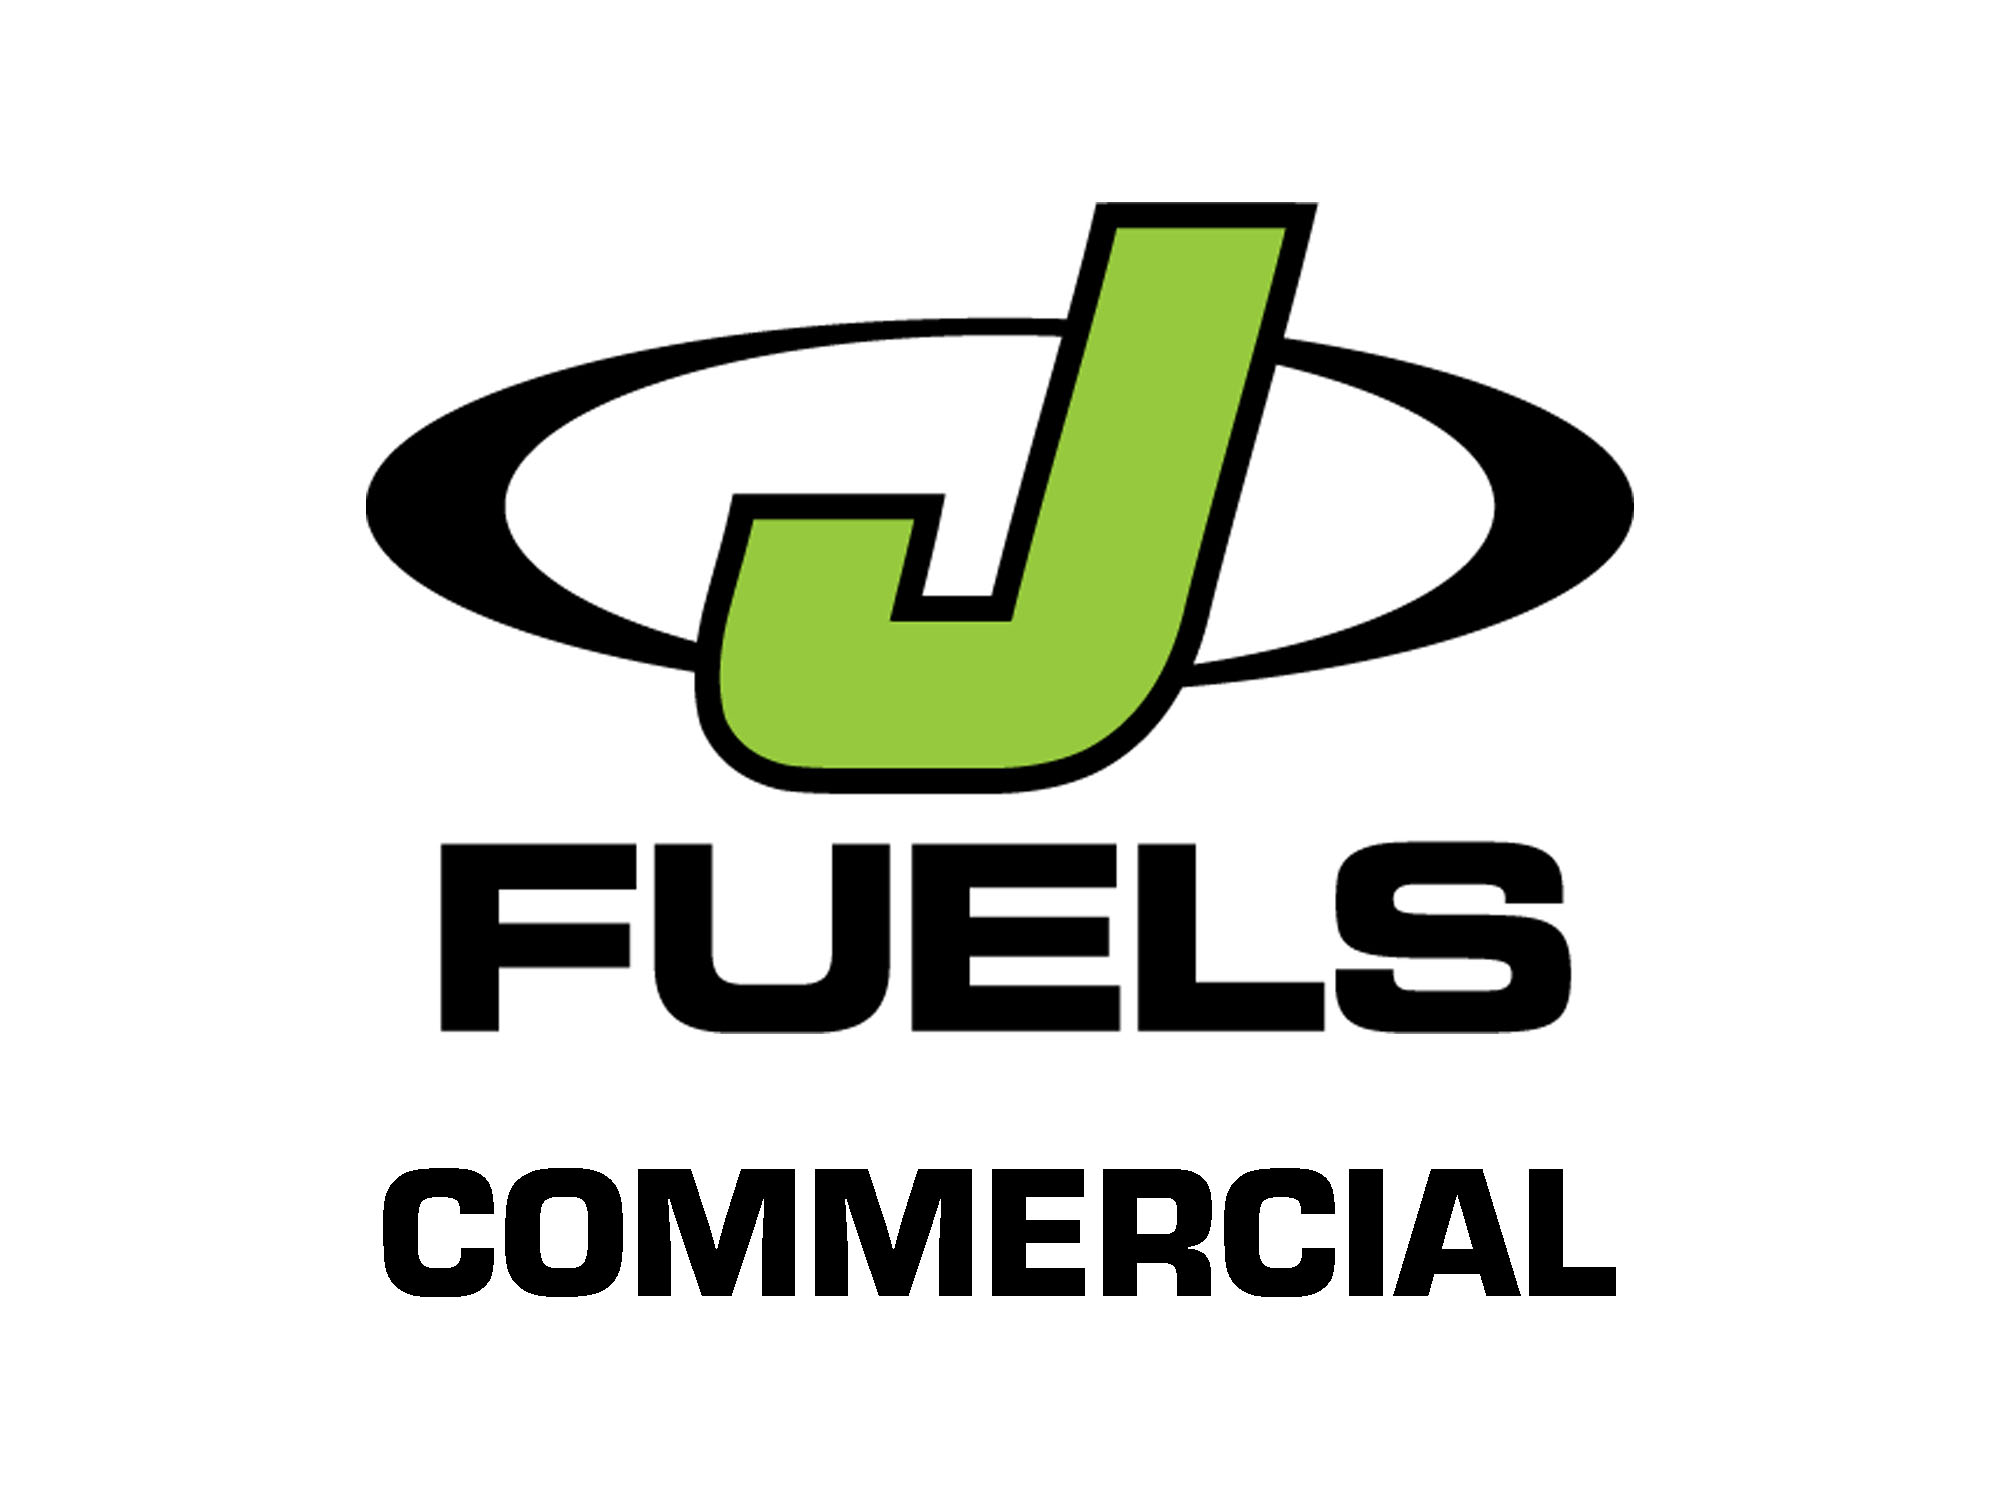 j_fuels-commercial-hover